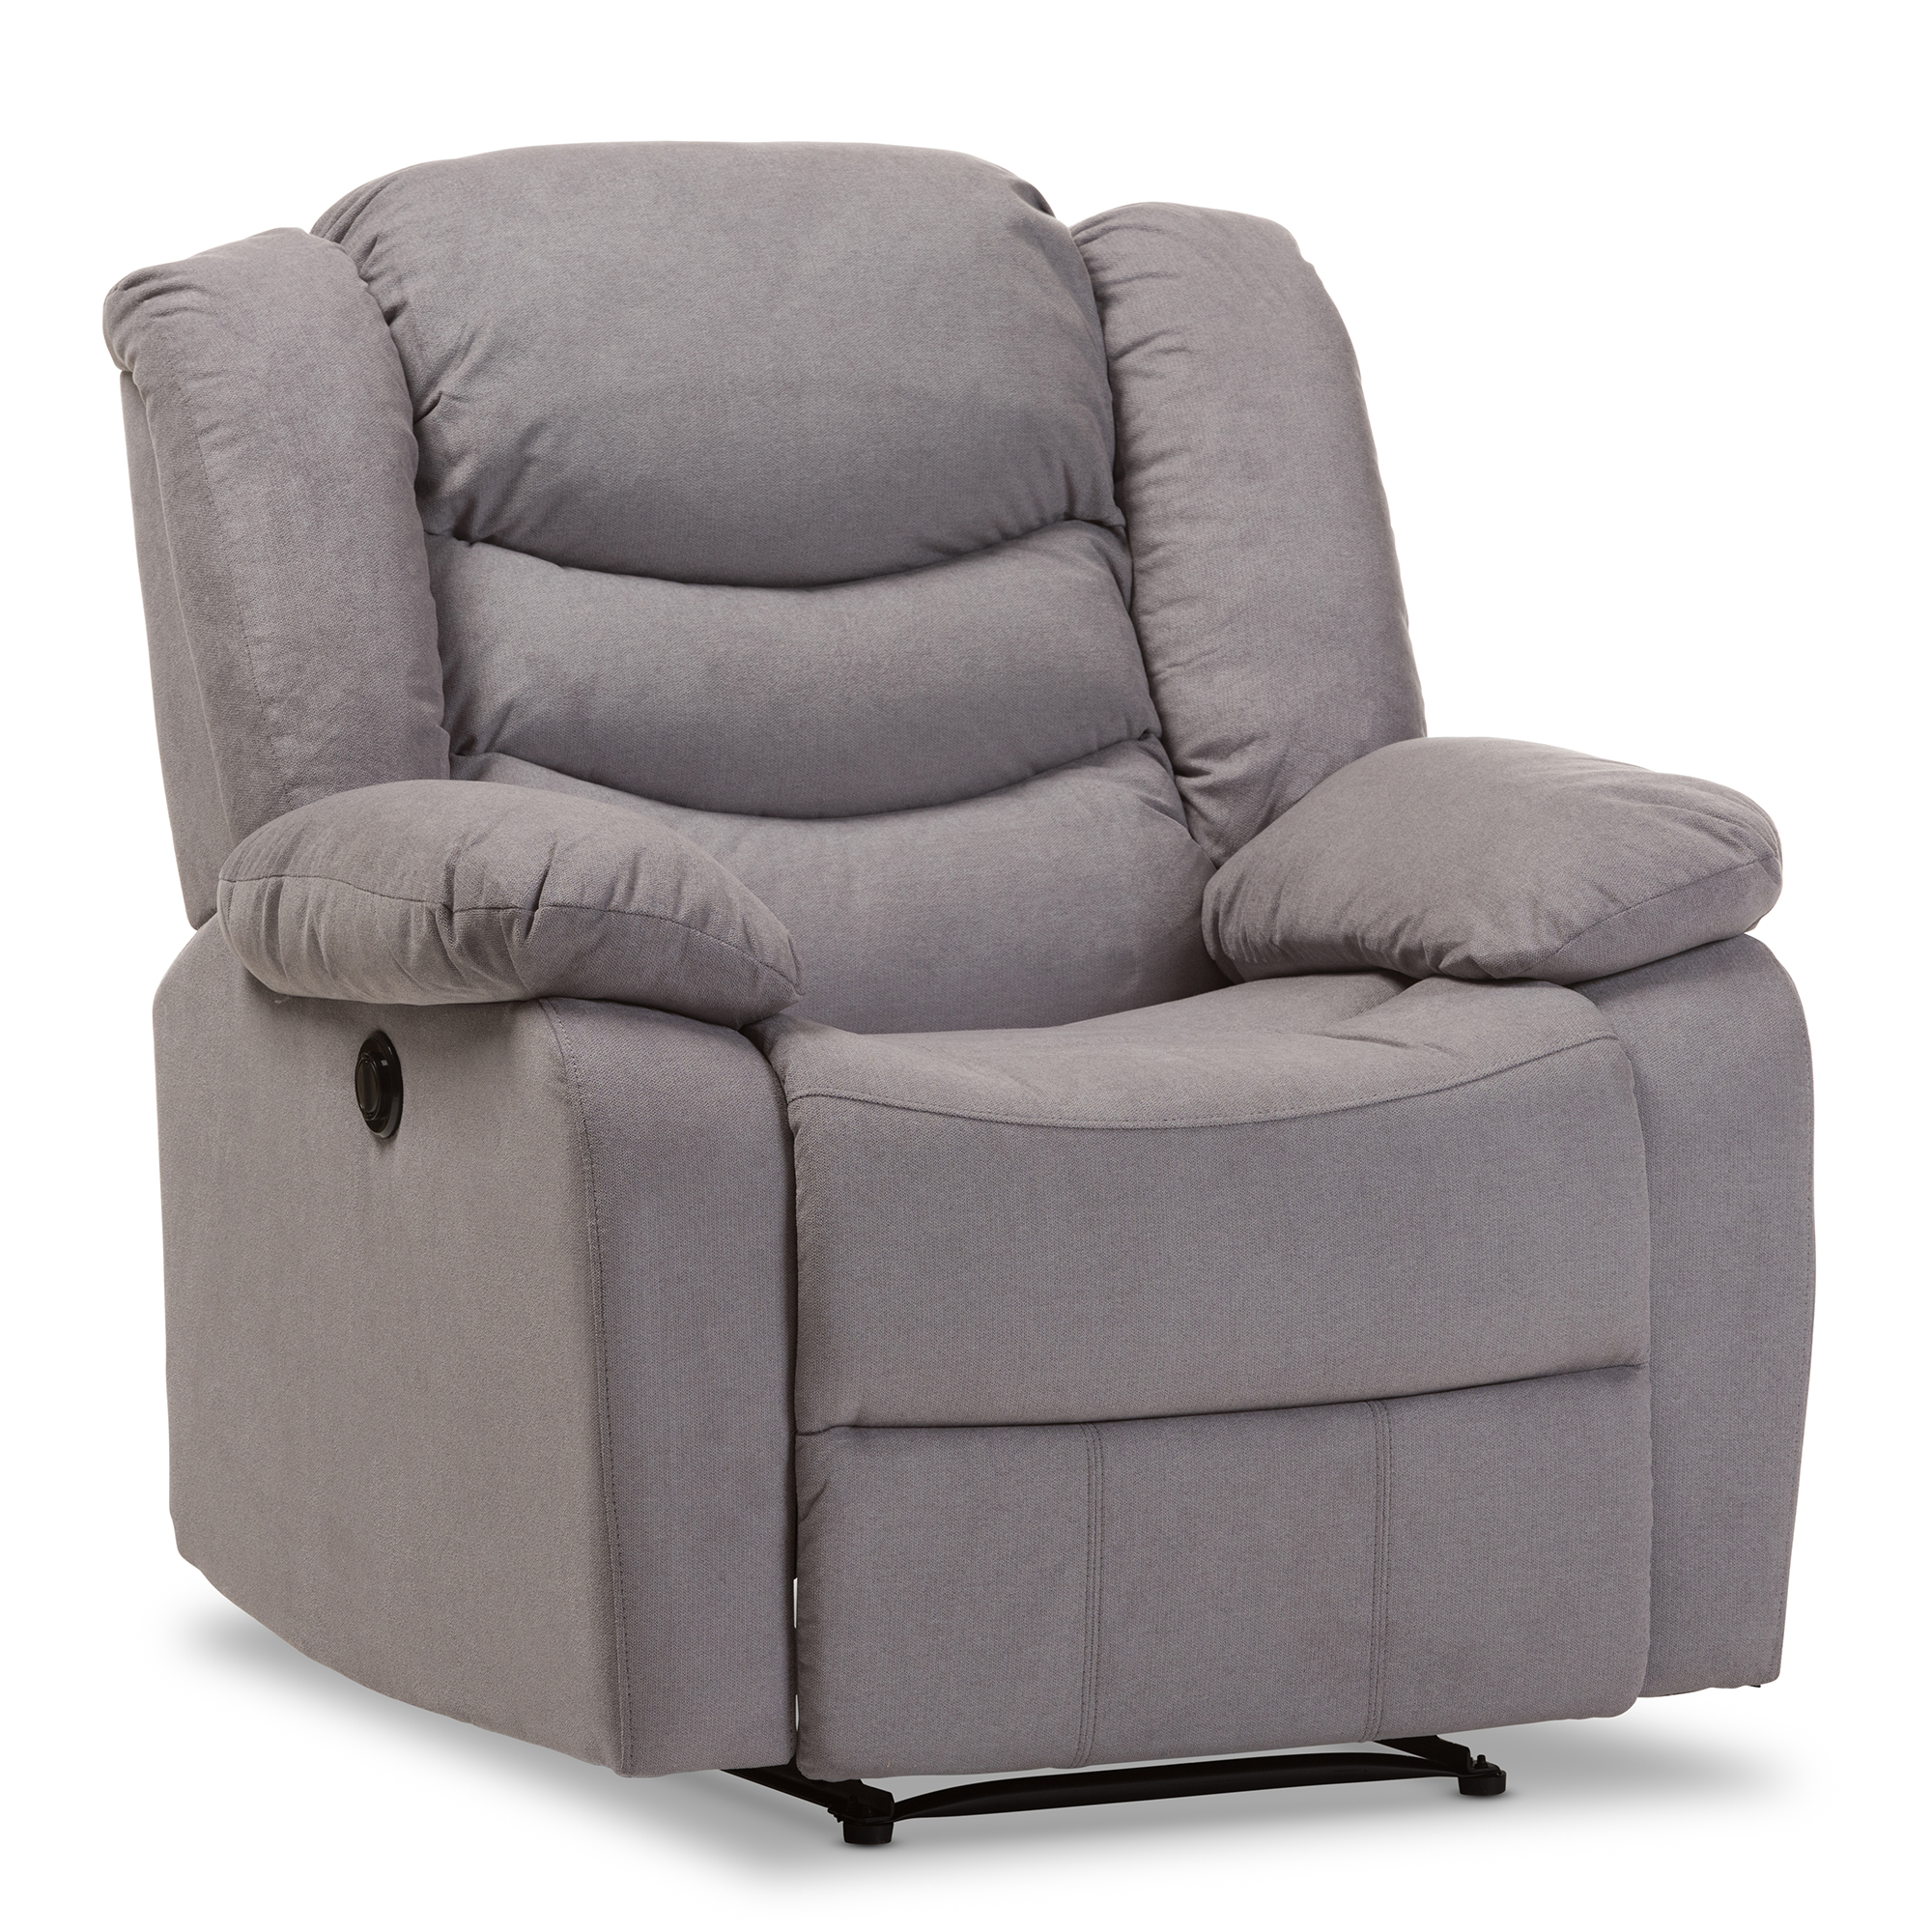 Baxton Studio Lynette Modern and Contemporary Grey Fabric Power Recliner Chair  sc 1 st  Baxton Studio Outlet & Baxton Studio Lynette Modern and Contemporary Grey Fabric Power ... islam-shia.org